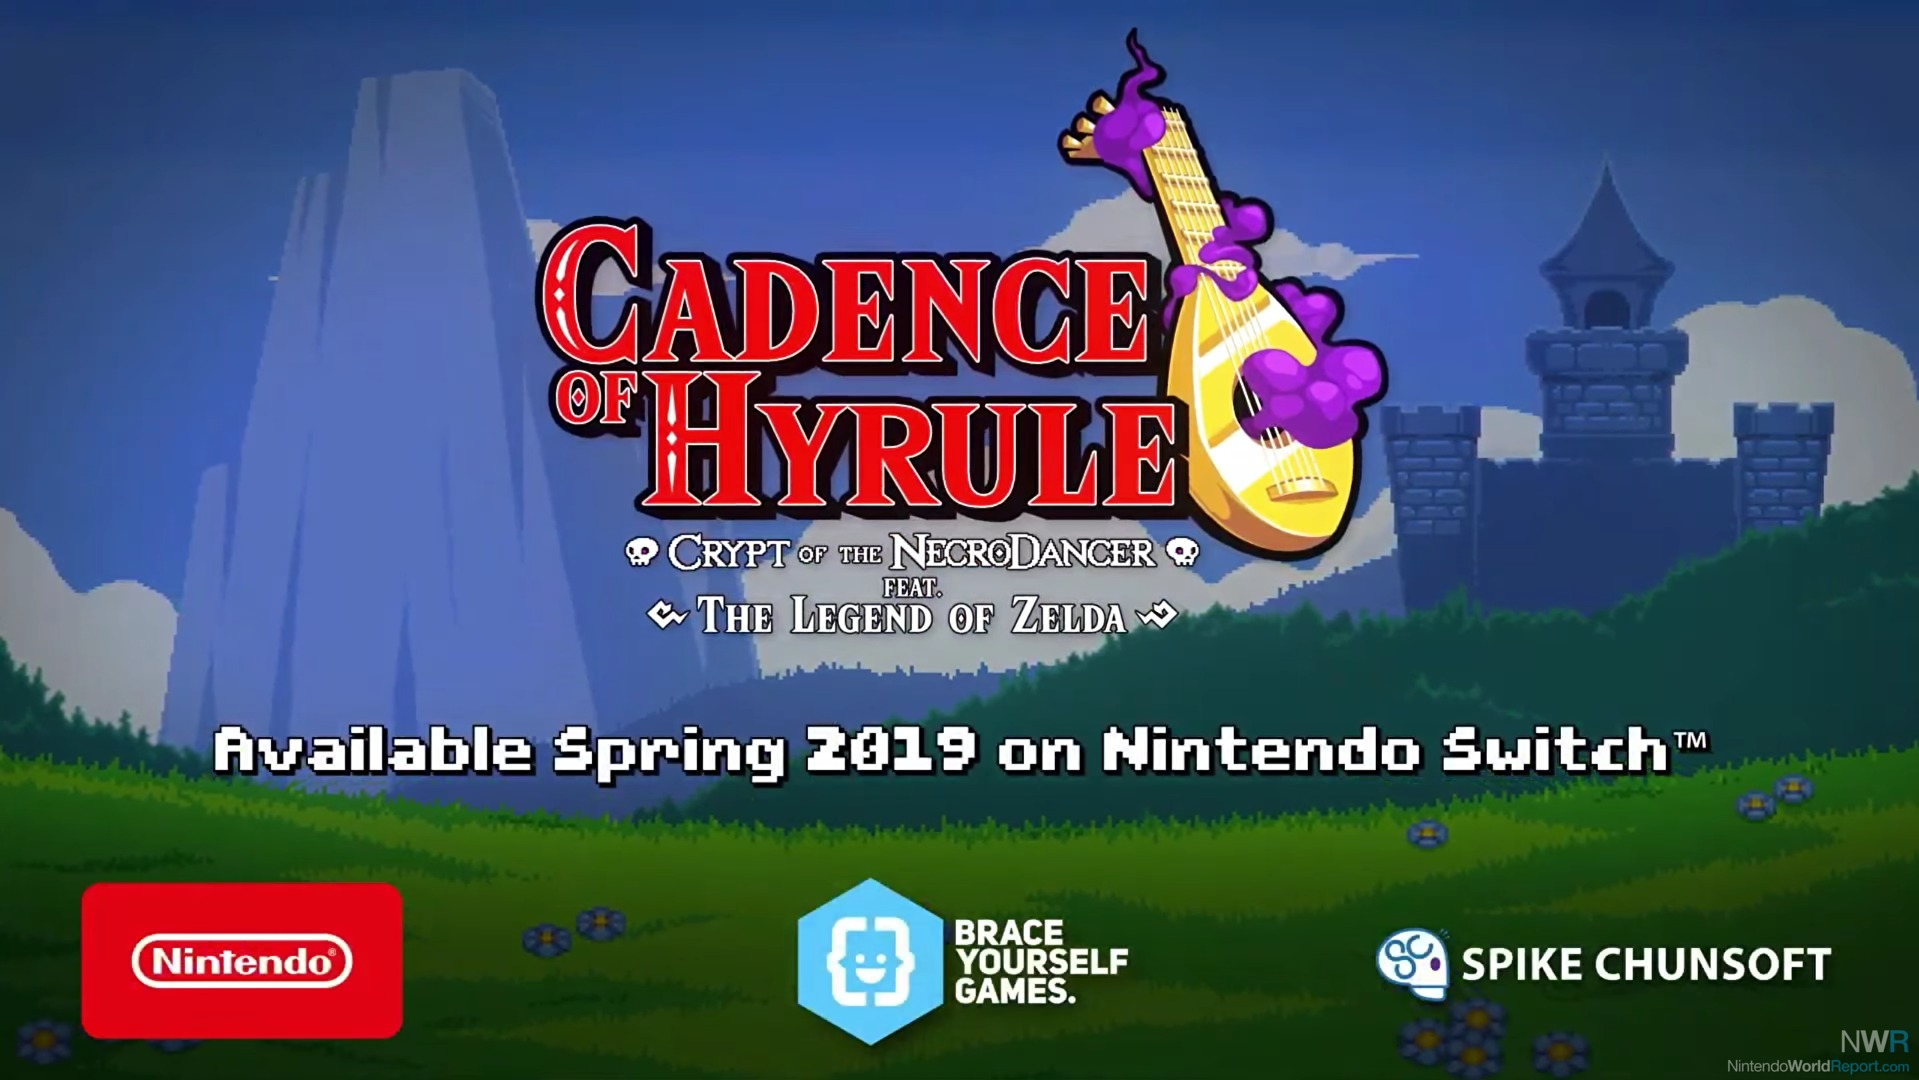 Cadence of Hyrule Blends Zelda With Crypt of the NecroDancer